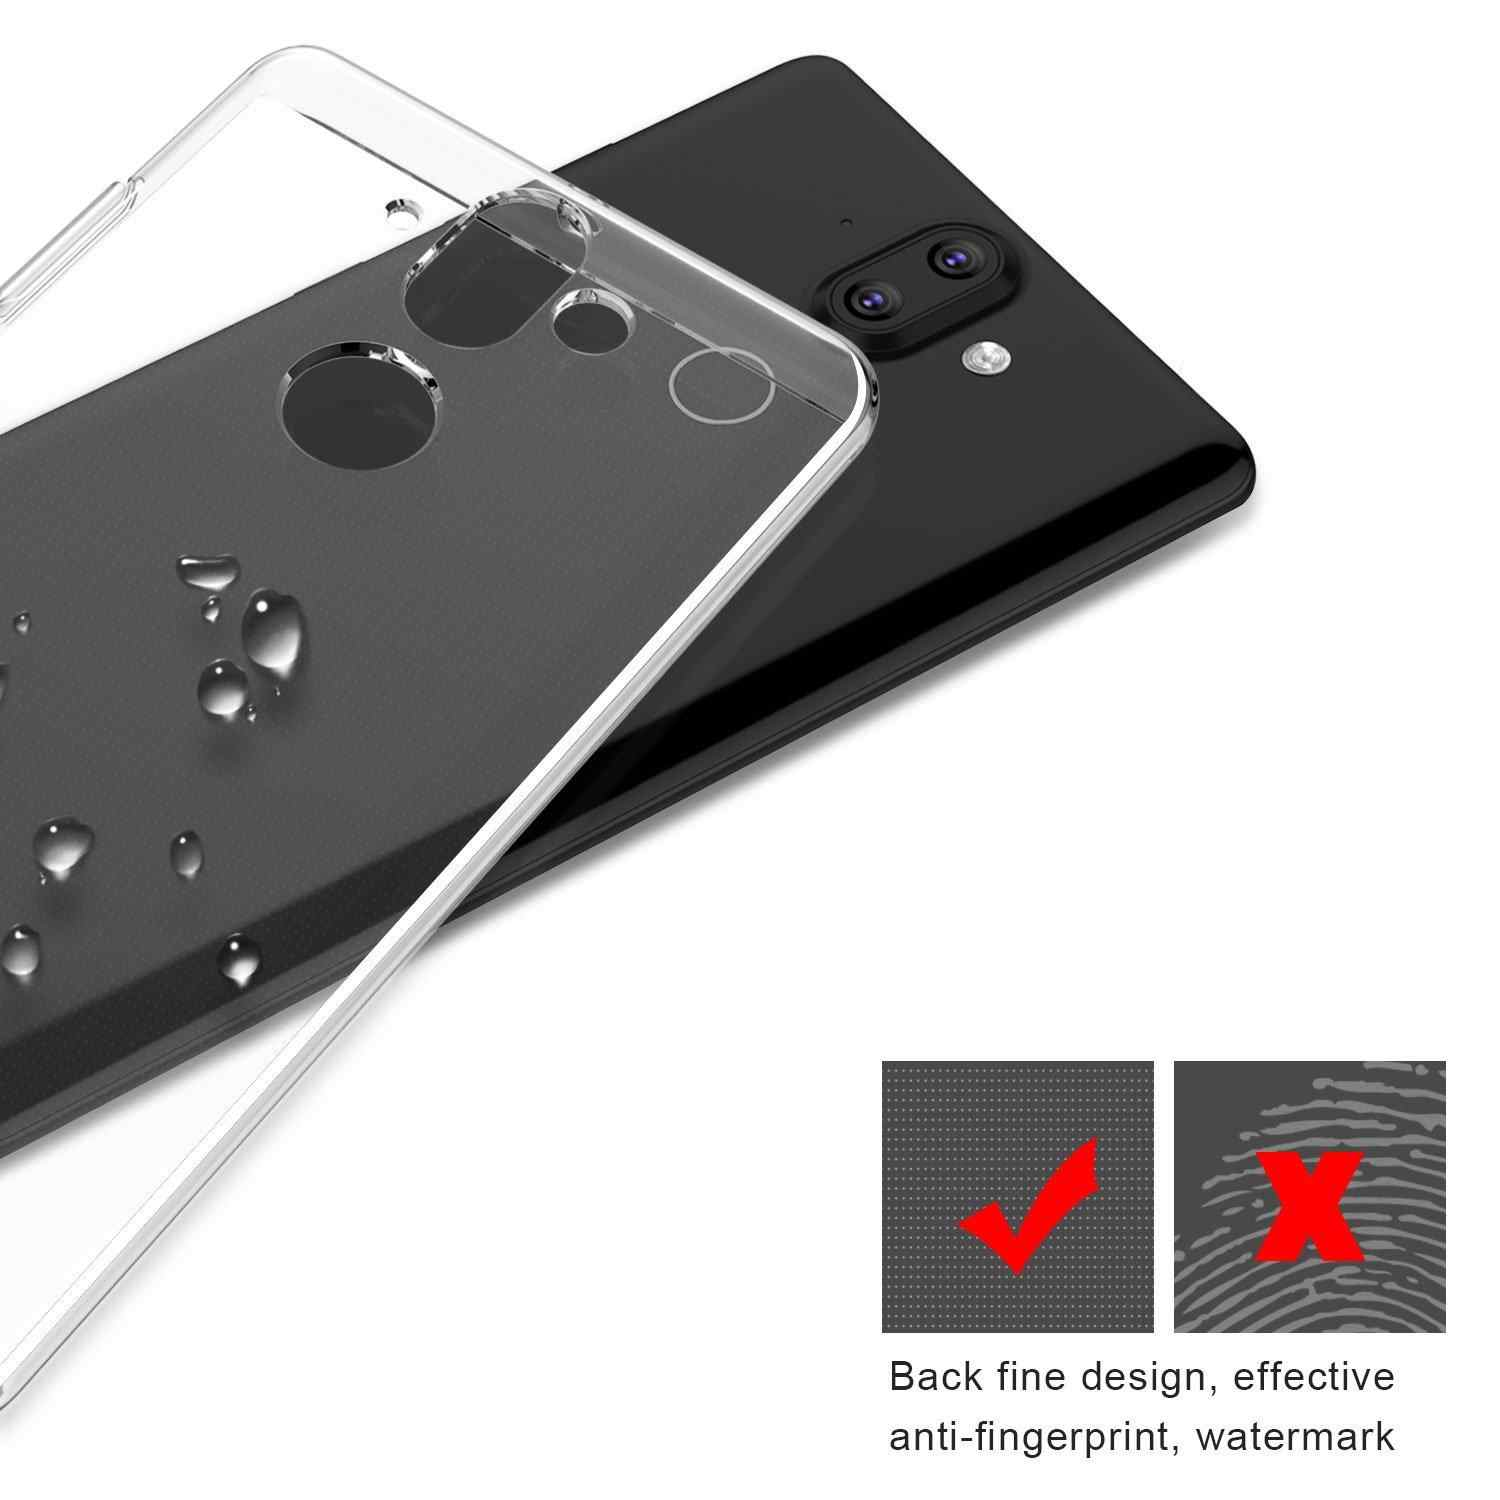 Clear TPU Case For Nokia 9 Pure View 7 Plus 4.2 3.2 2.2 5.1 3.1 2.1 Silicon Cover For Nokia 3.1C 7.2 6.2 1 2 3 4 5 6 7 8 Sirocco